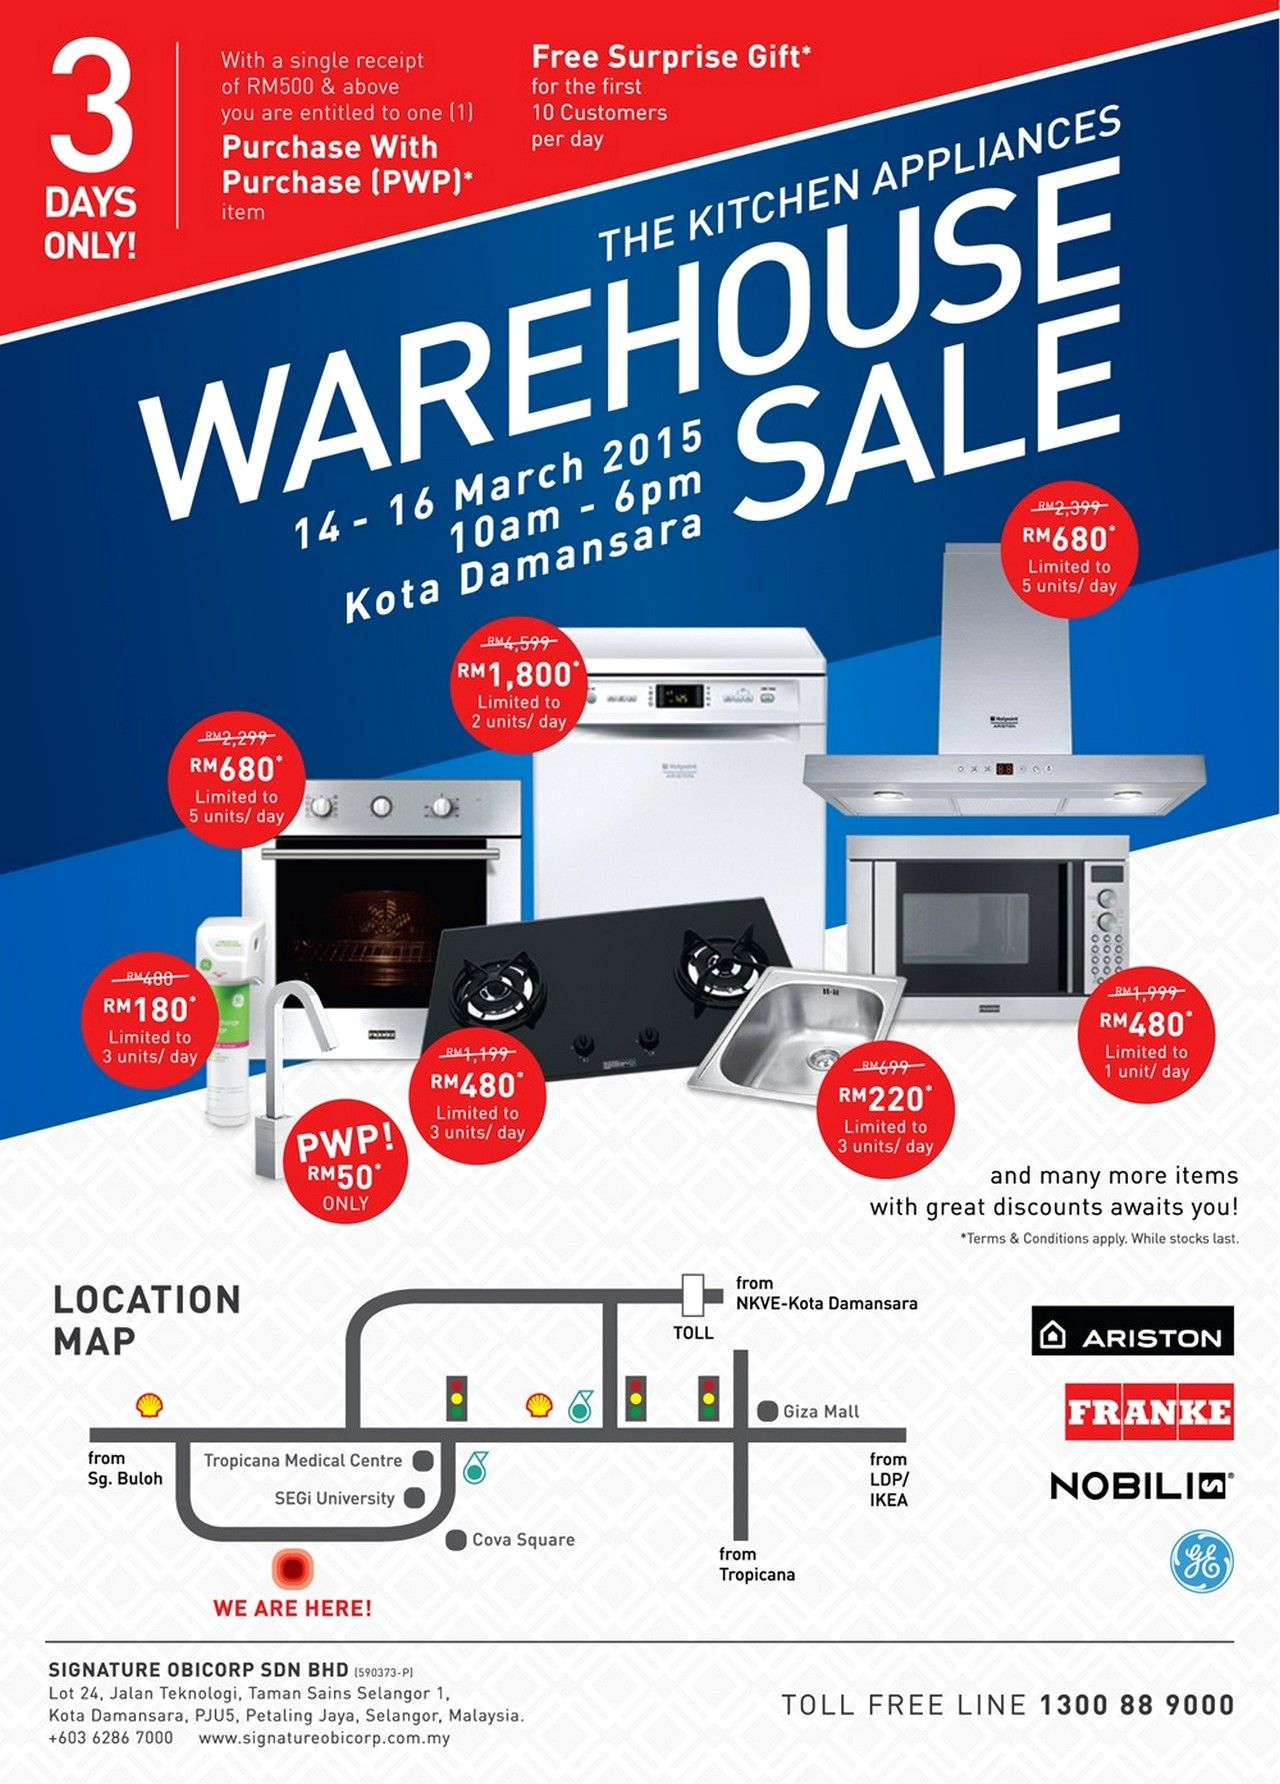 Kitchen Island Clearance Sale 14 16 Mar 2015 Signature Kitchen Warehouse Sale For Kitchen